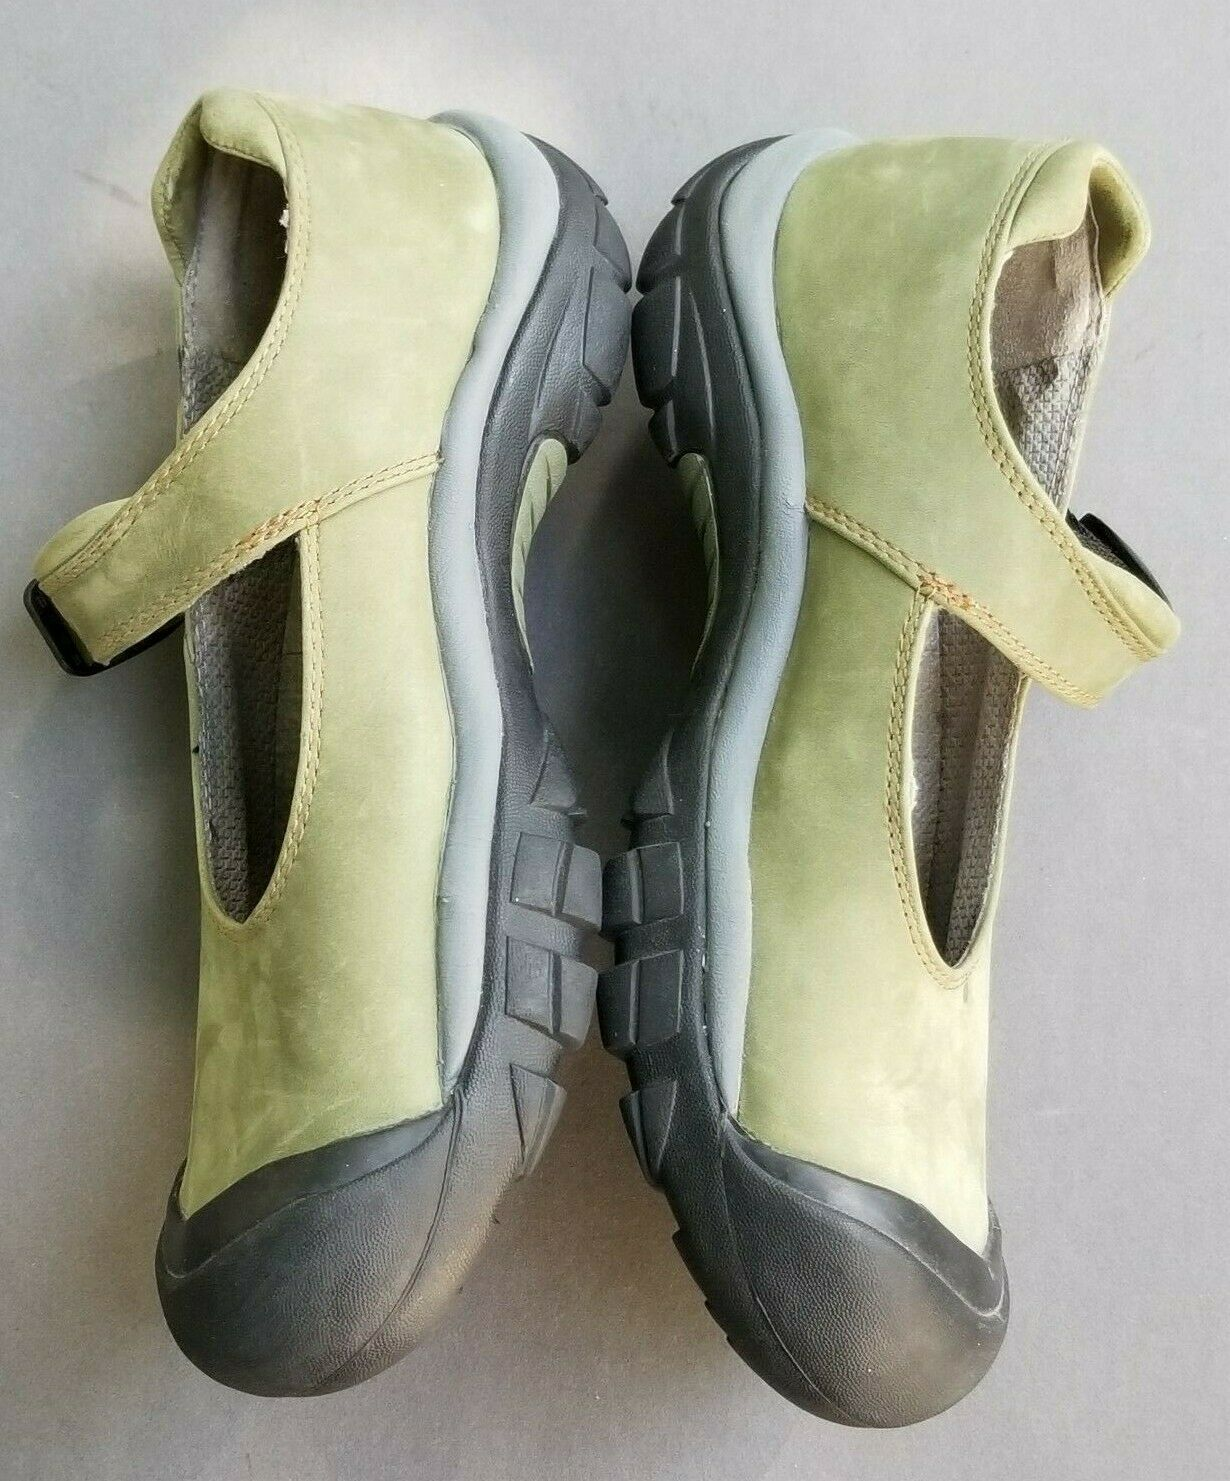 Keen Womens Mary Jane 7.5 Buckle Strap Green Suede Slip On Trail Shoes 38 image 6